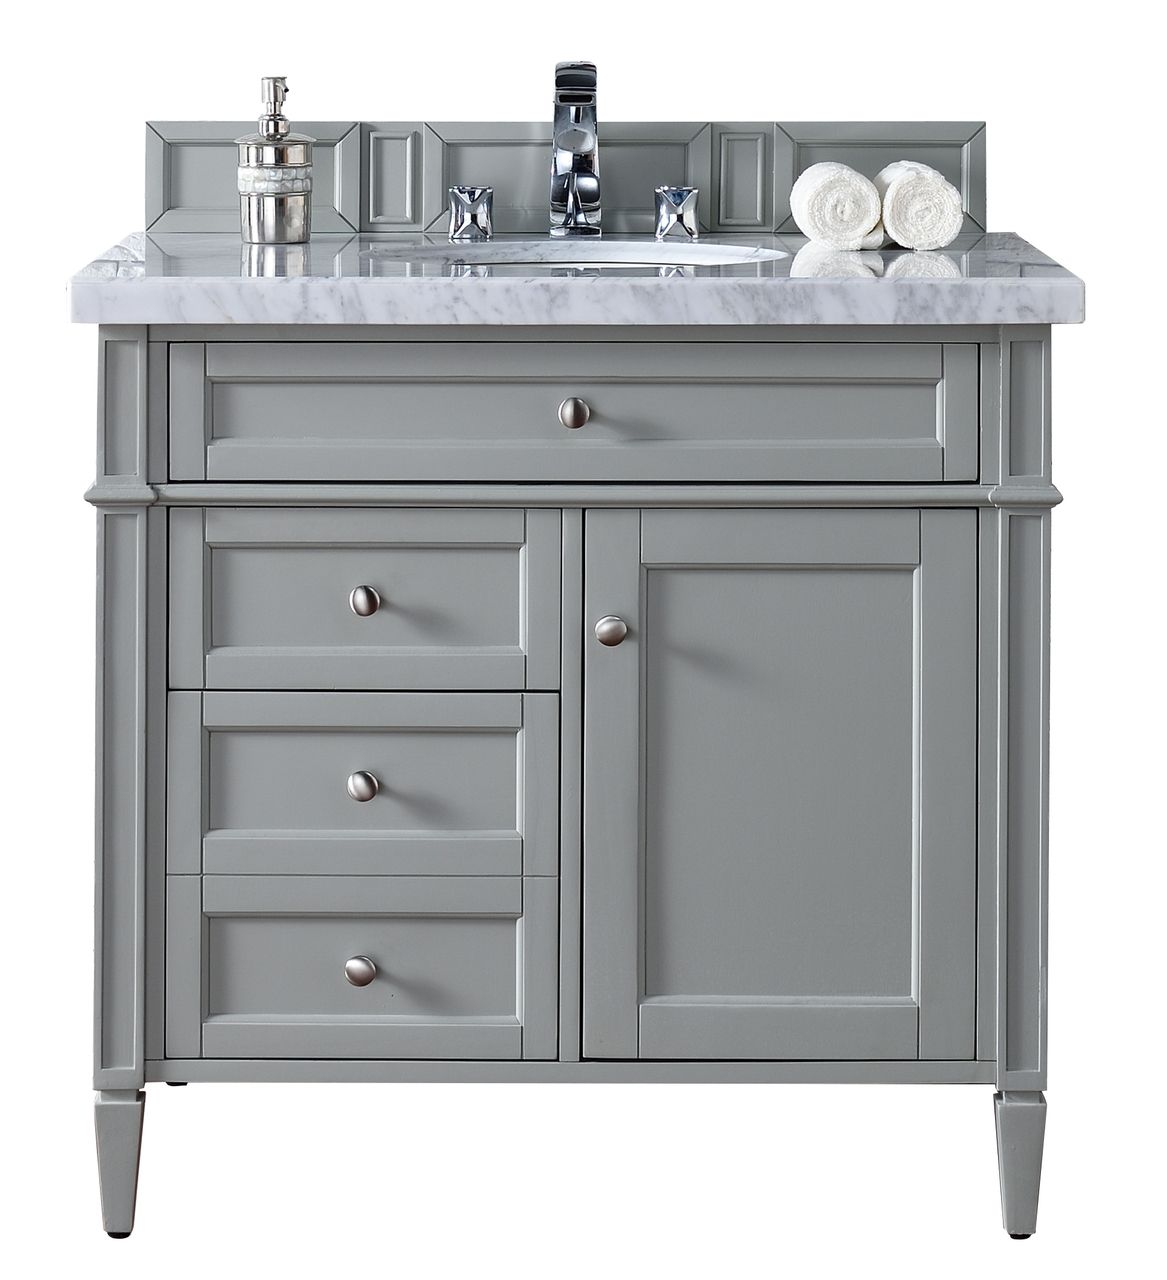 "Contemporary Bathroom Vanities 36 Inch 36"" brittany single bathroom vanity urban gray 